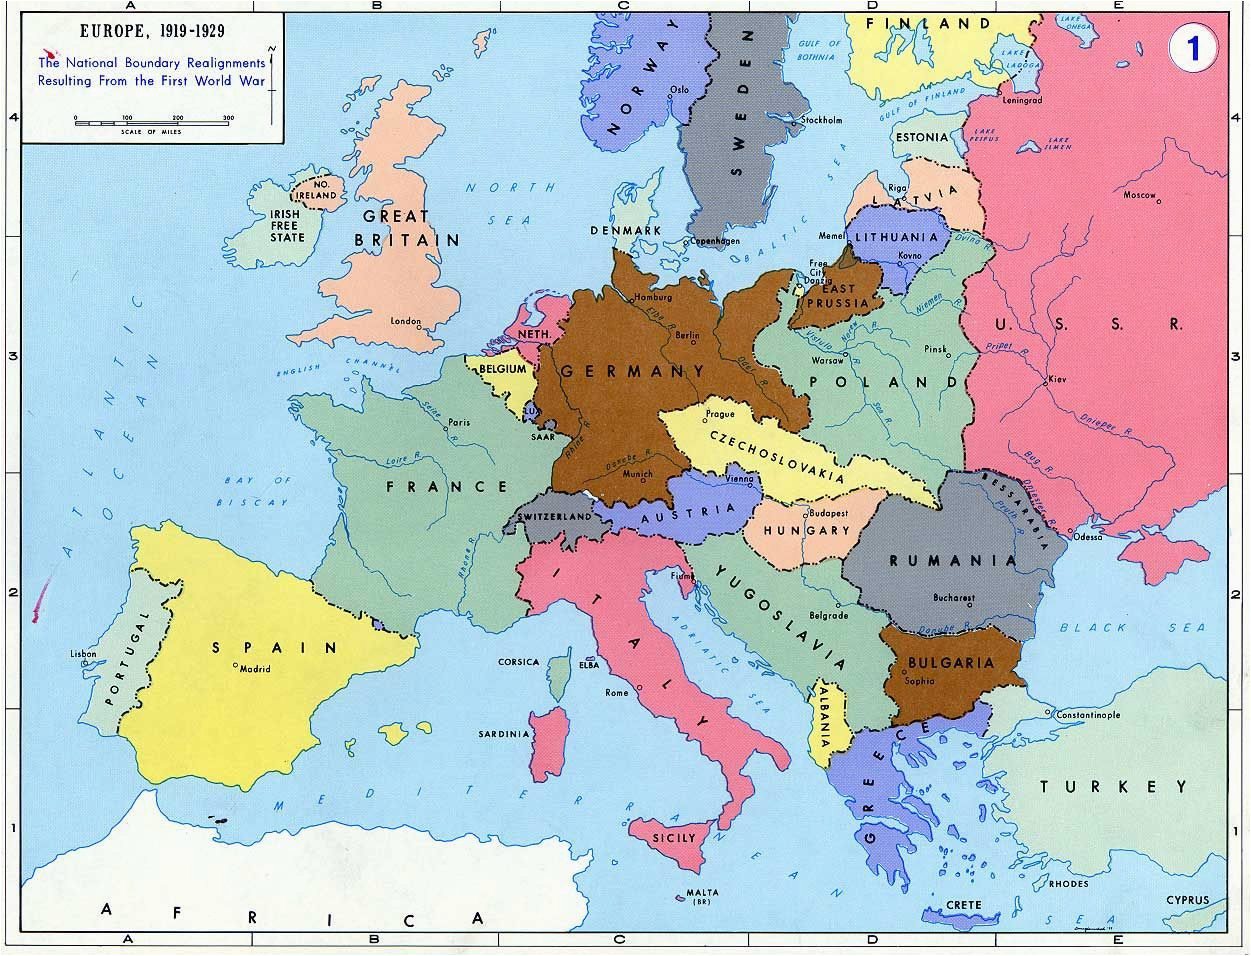 Map Of Europe Pre World War 2 Pre World War Ii Here are the Boundaries as A Result Of